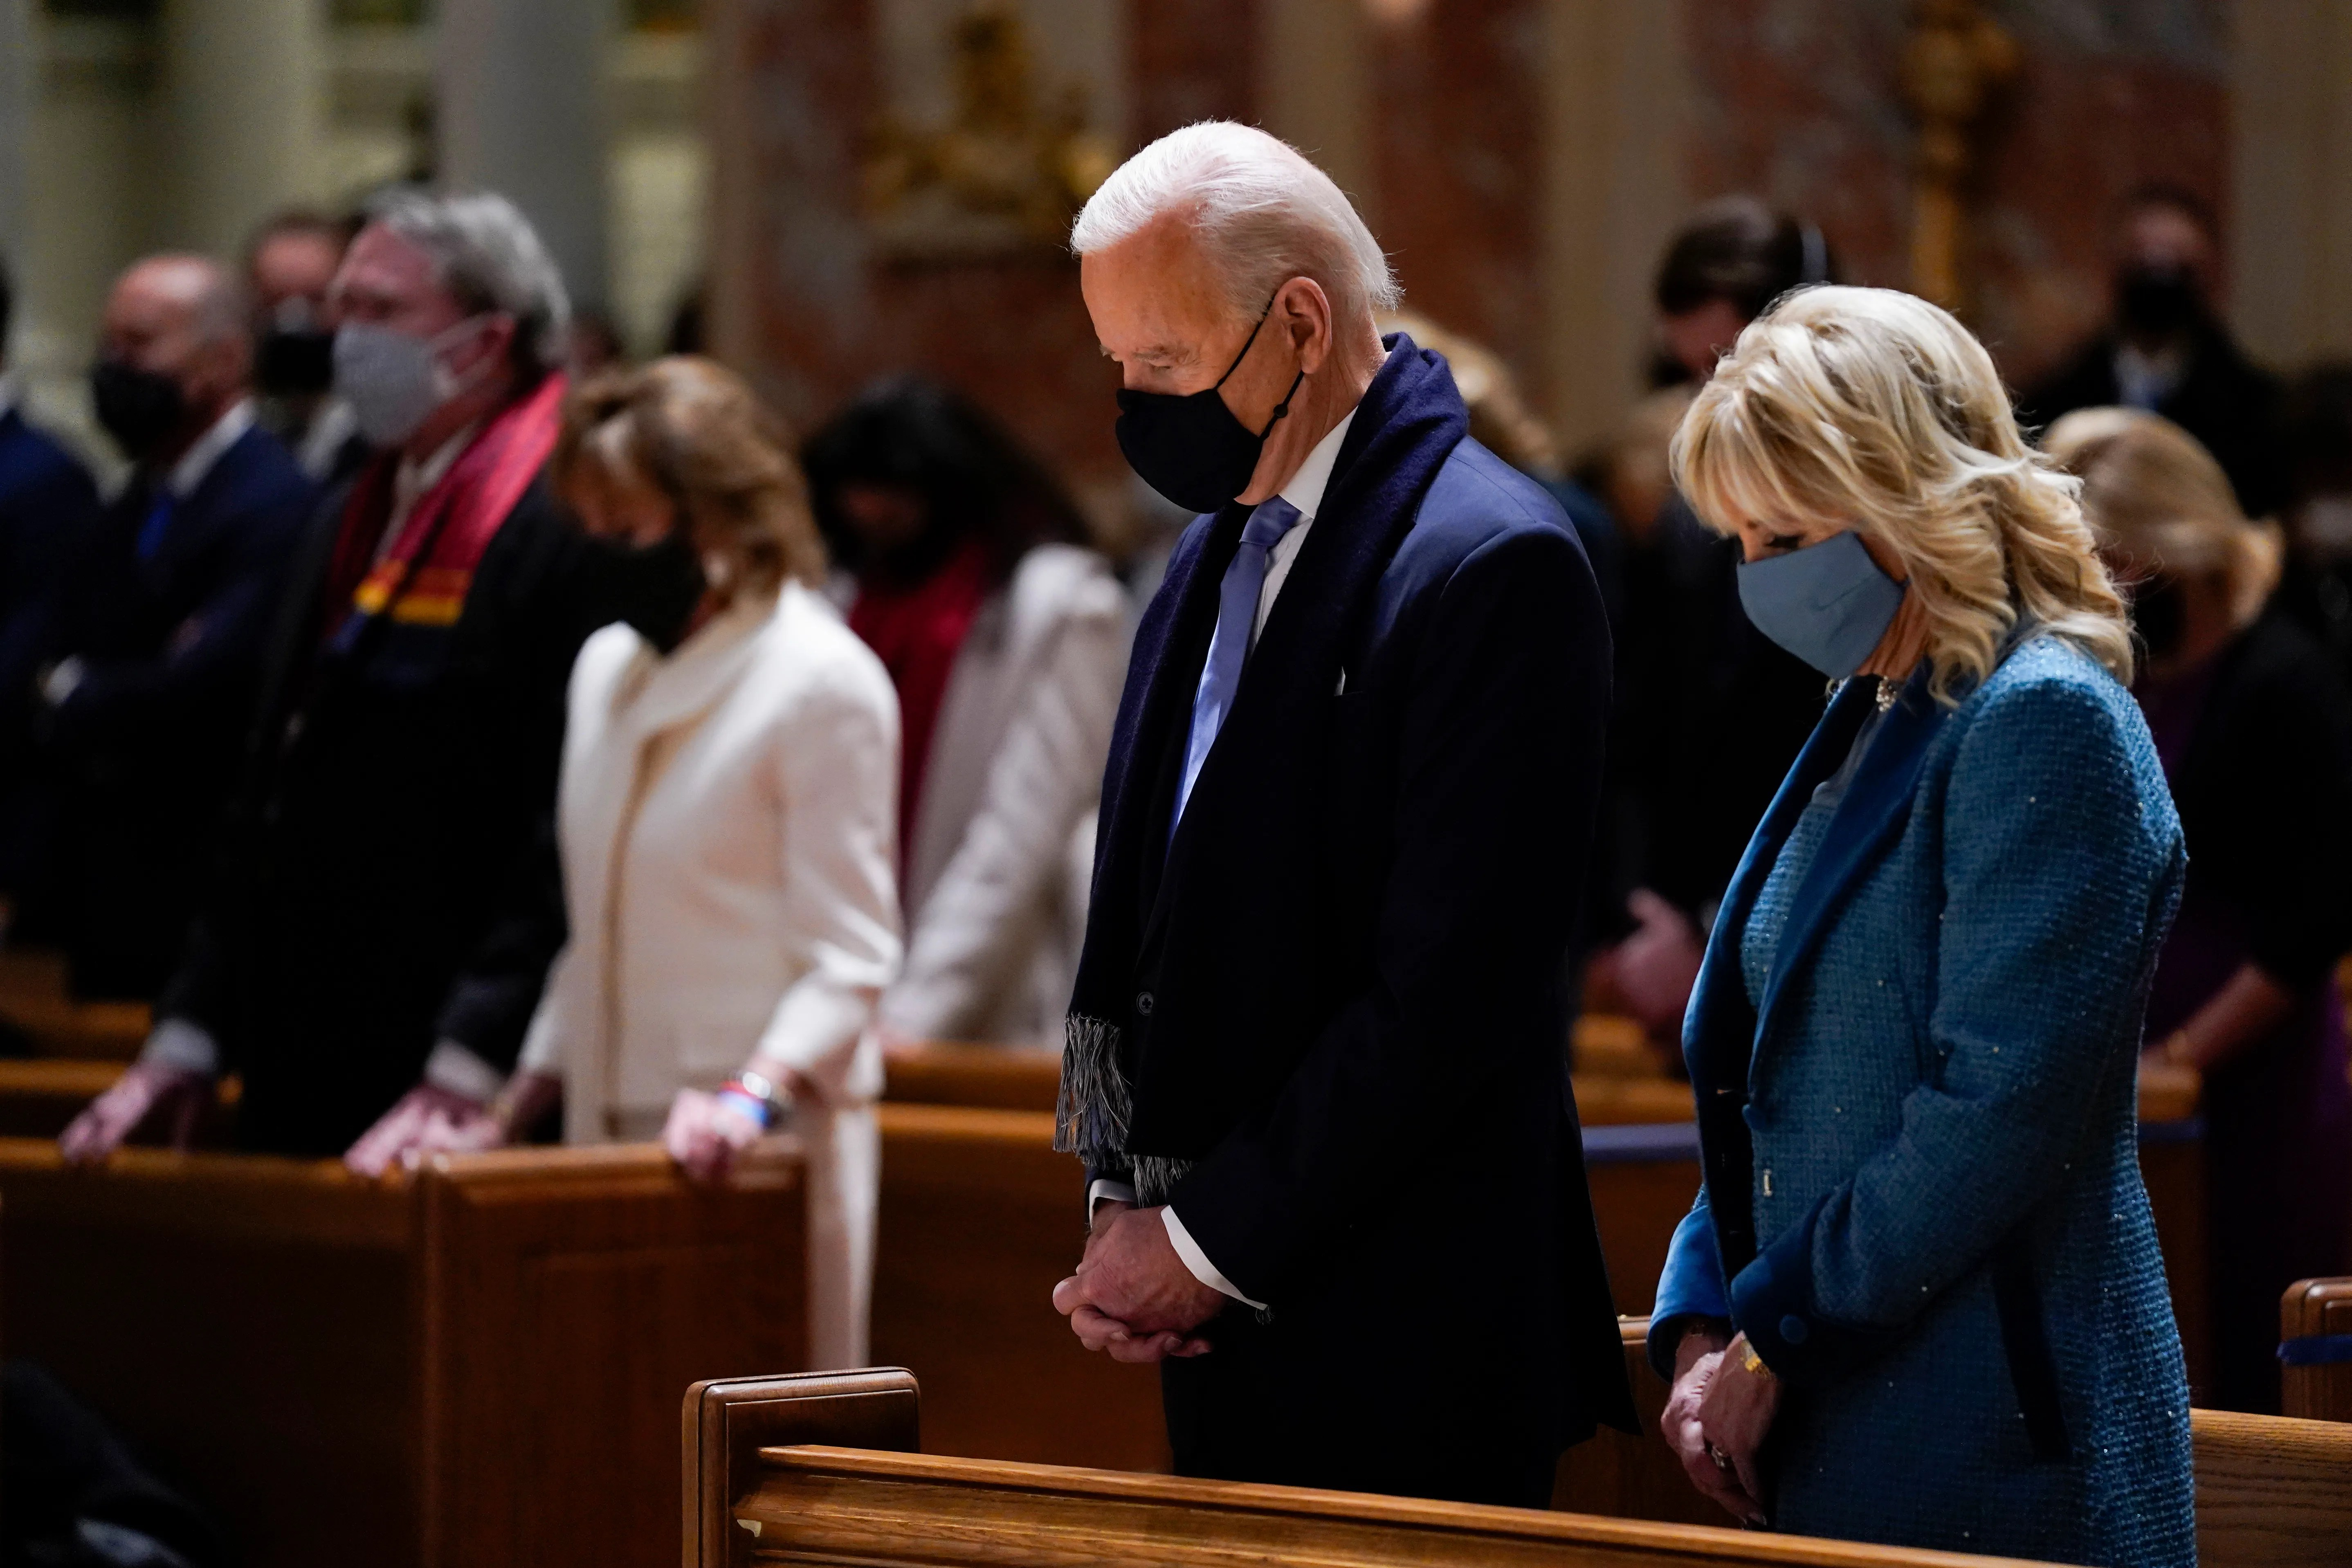 In this Jan. 20, 2021 file photo, President-elect Joe Biden and his wife, Jill Biden, attend Mass at the Cathedral of St. Matthew the Apostle during Inauguration Day ceremonies in Washington.